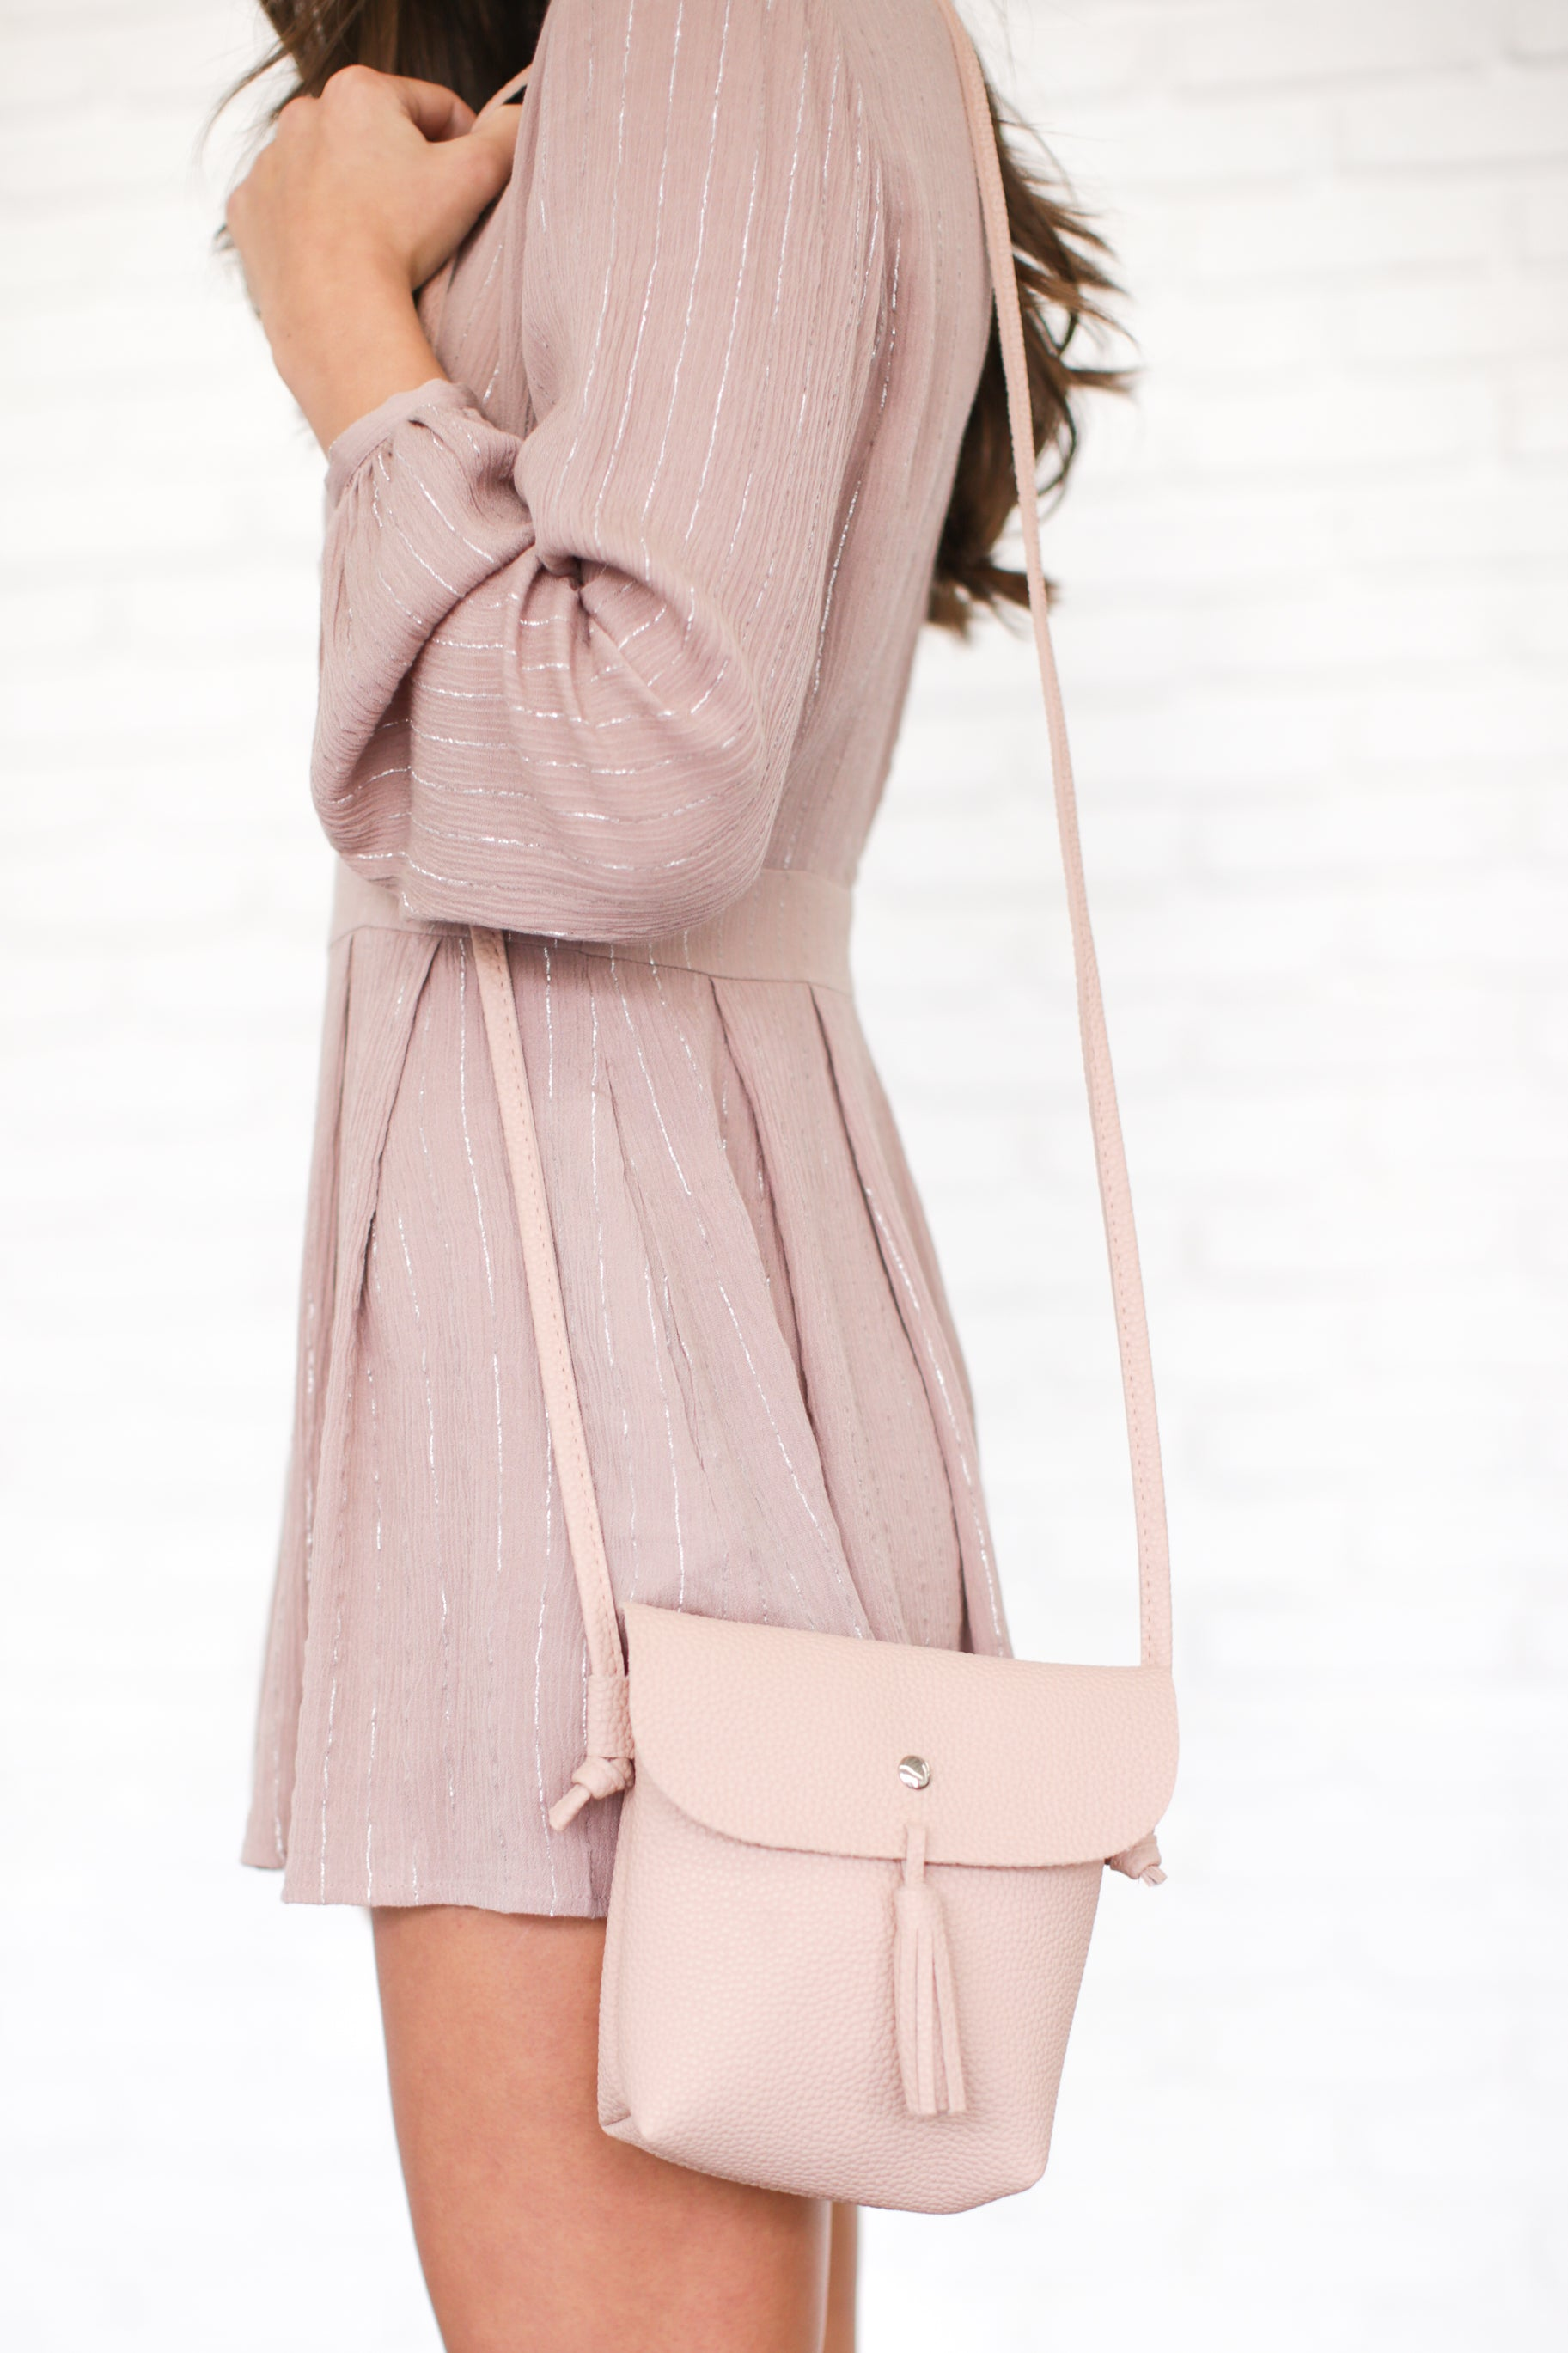 KARISSA BLUSH PINK CROSSBODY BAG